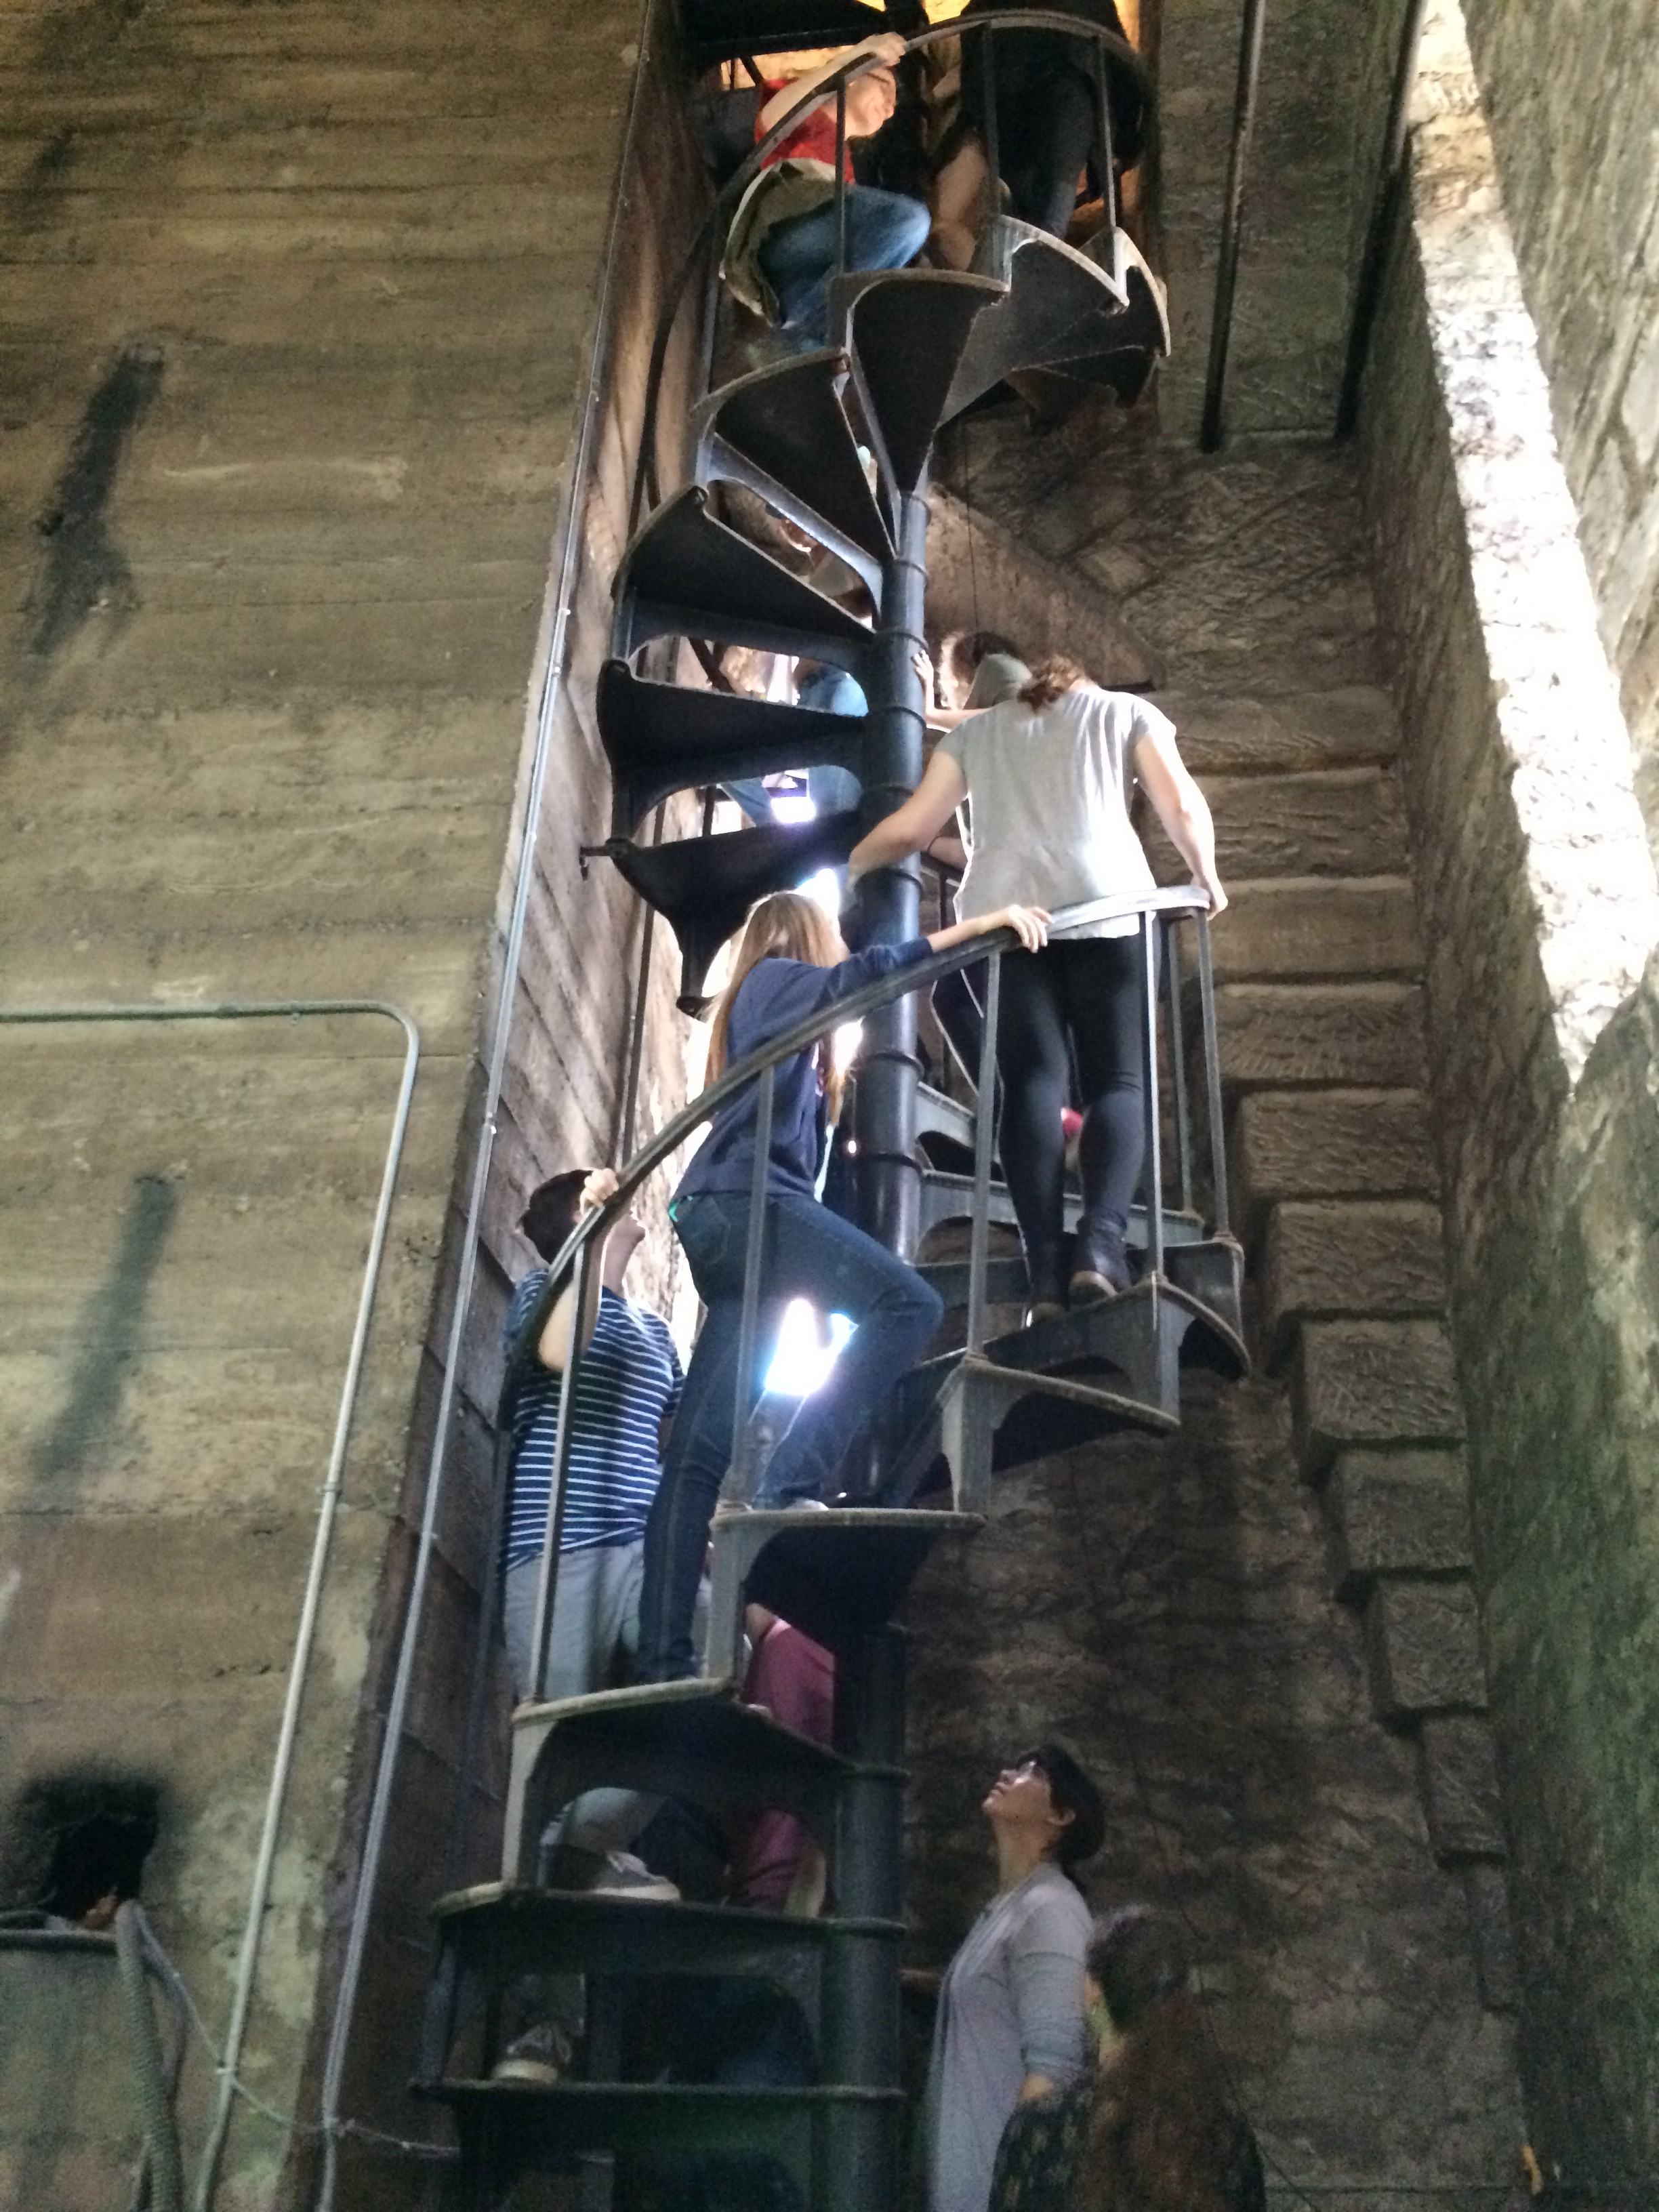 Visitors climb the spiral staircase to the tower.